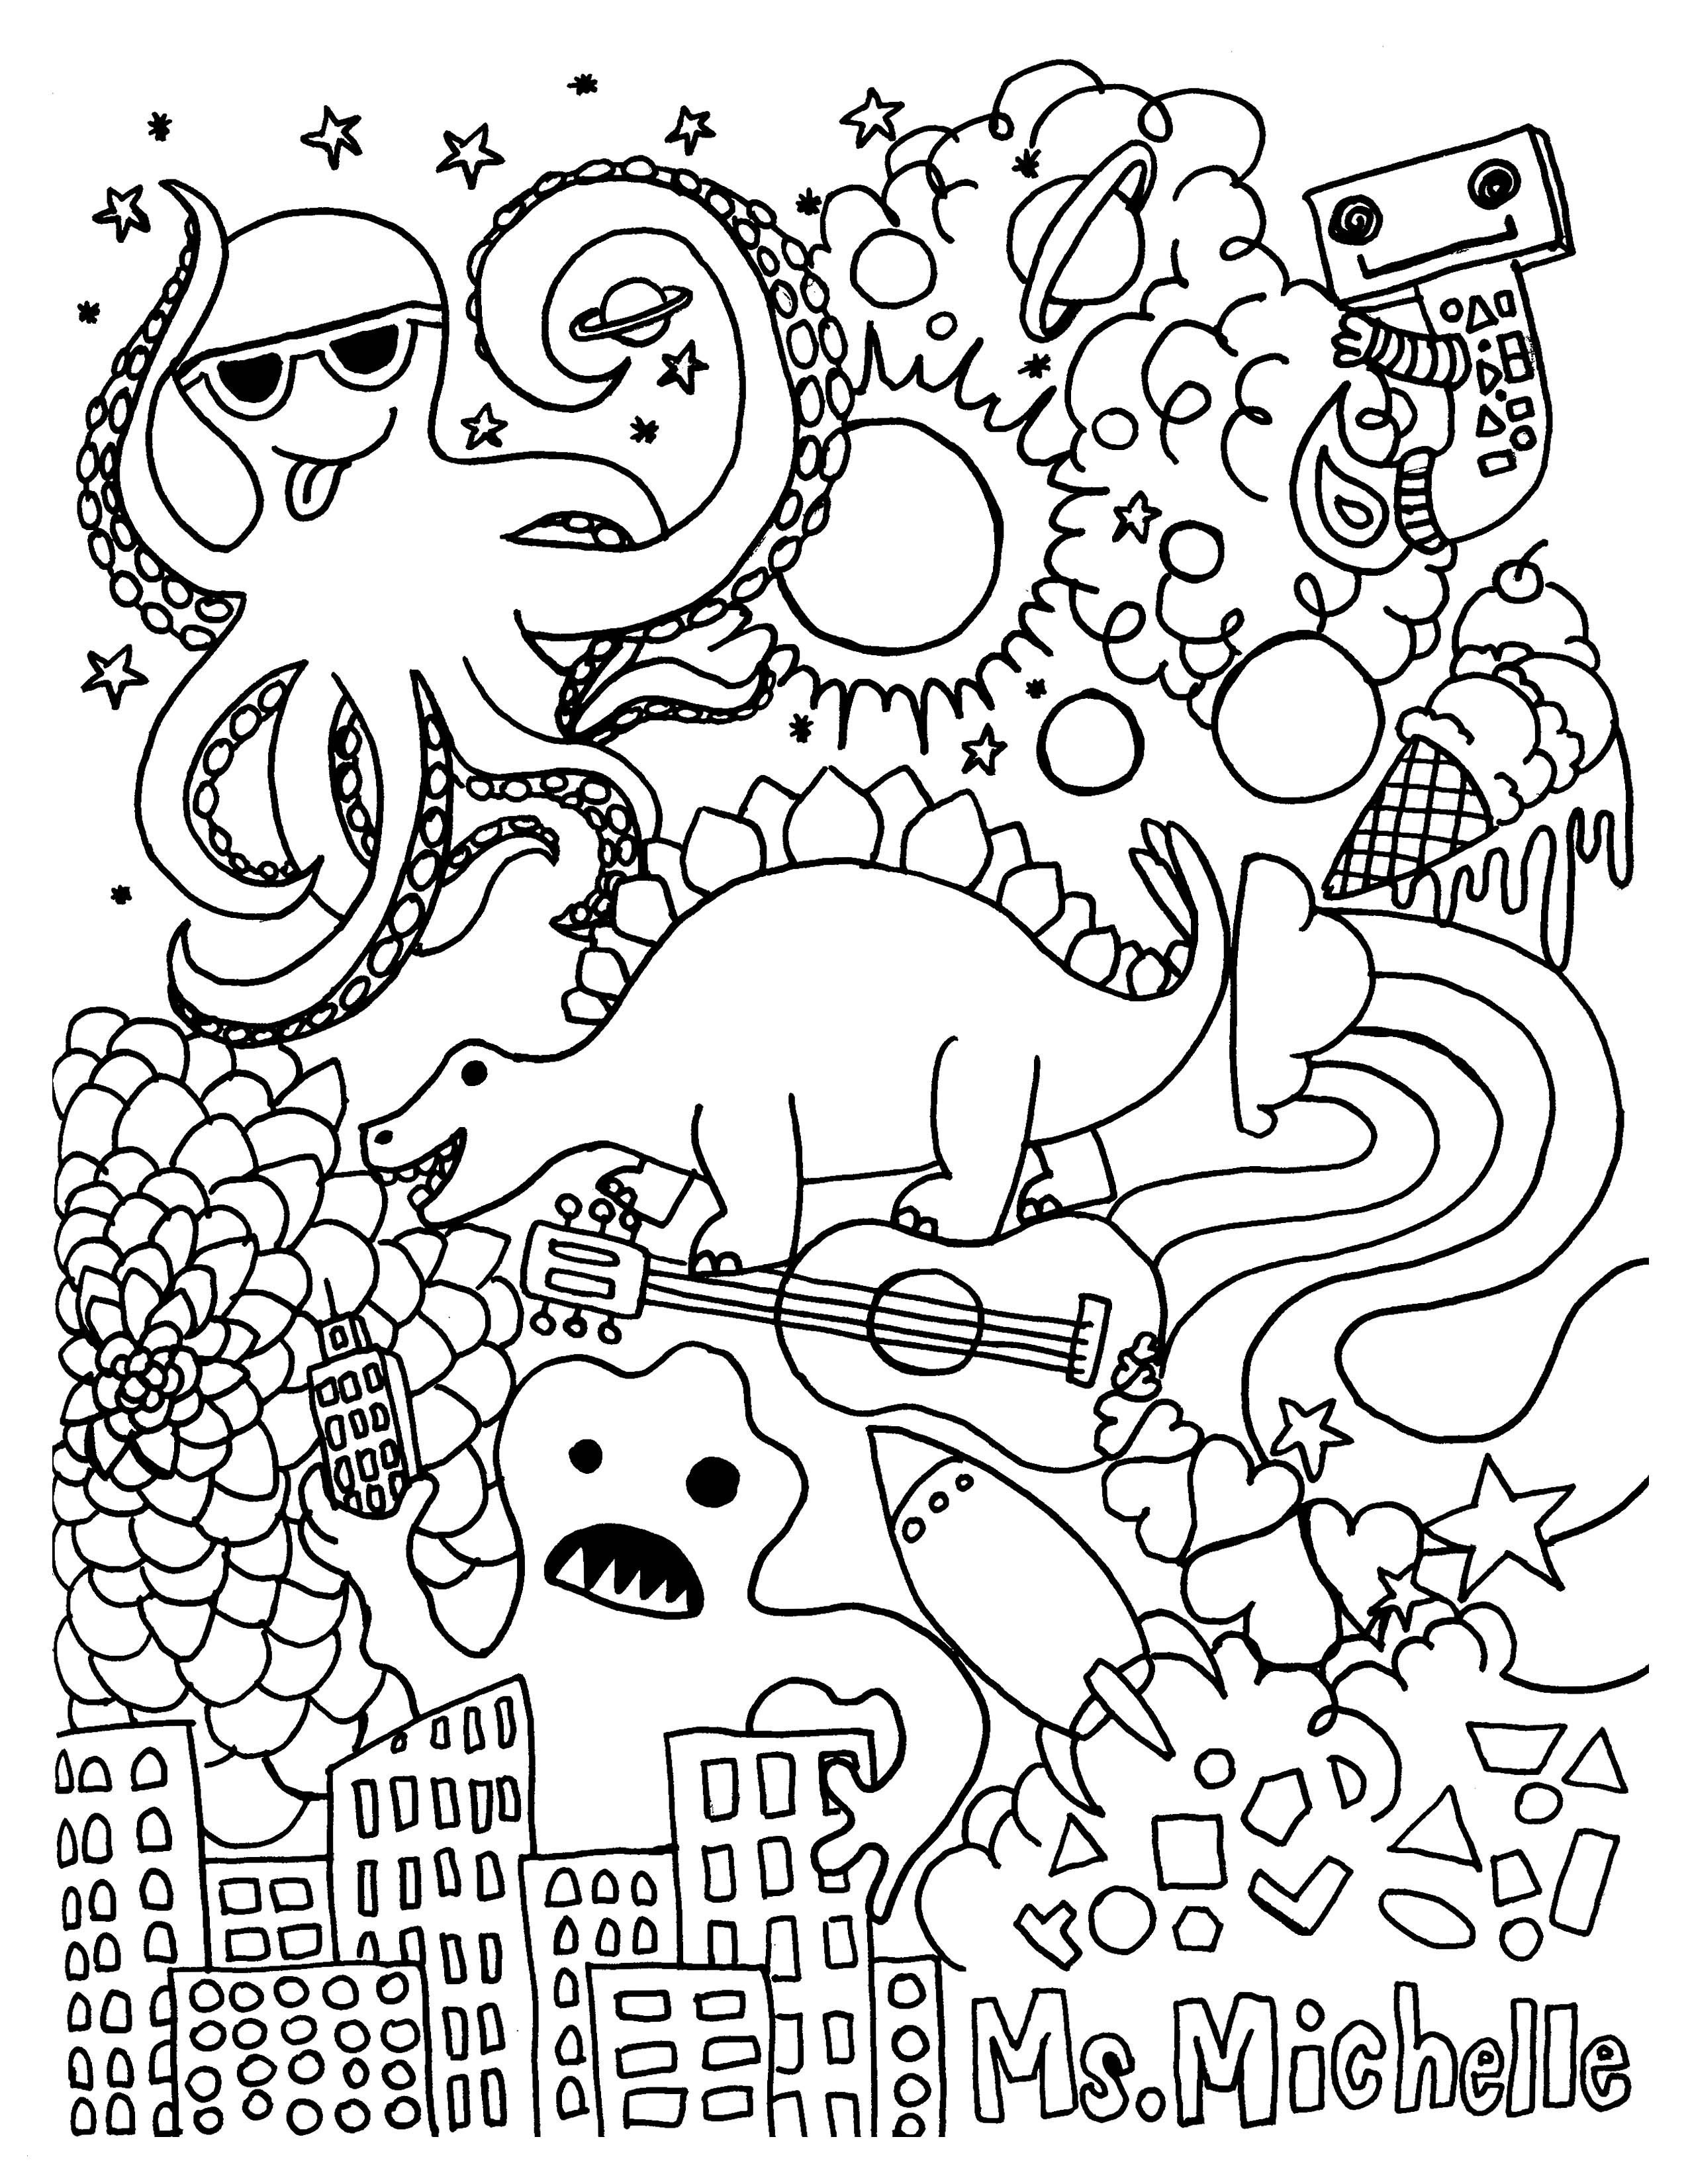 Printable Mitten Coloring Page Jesus Calms The Storm Coloring Page Jvzooreview